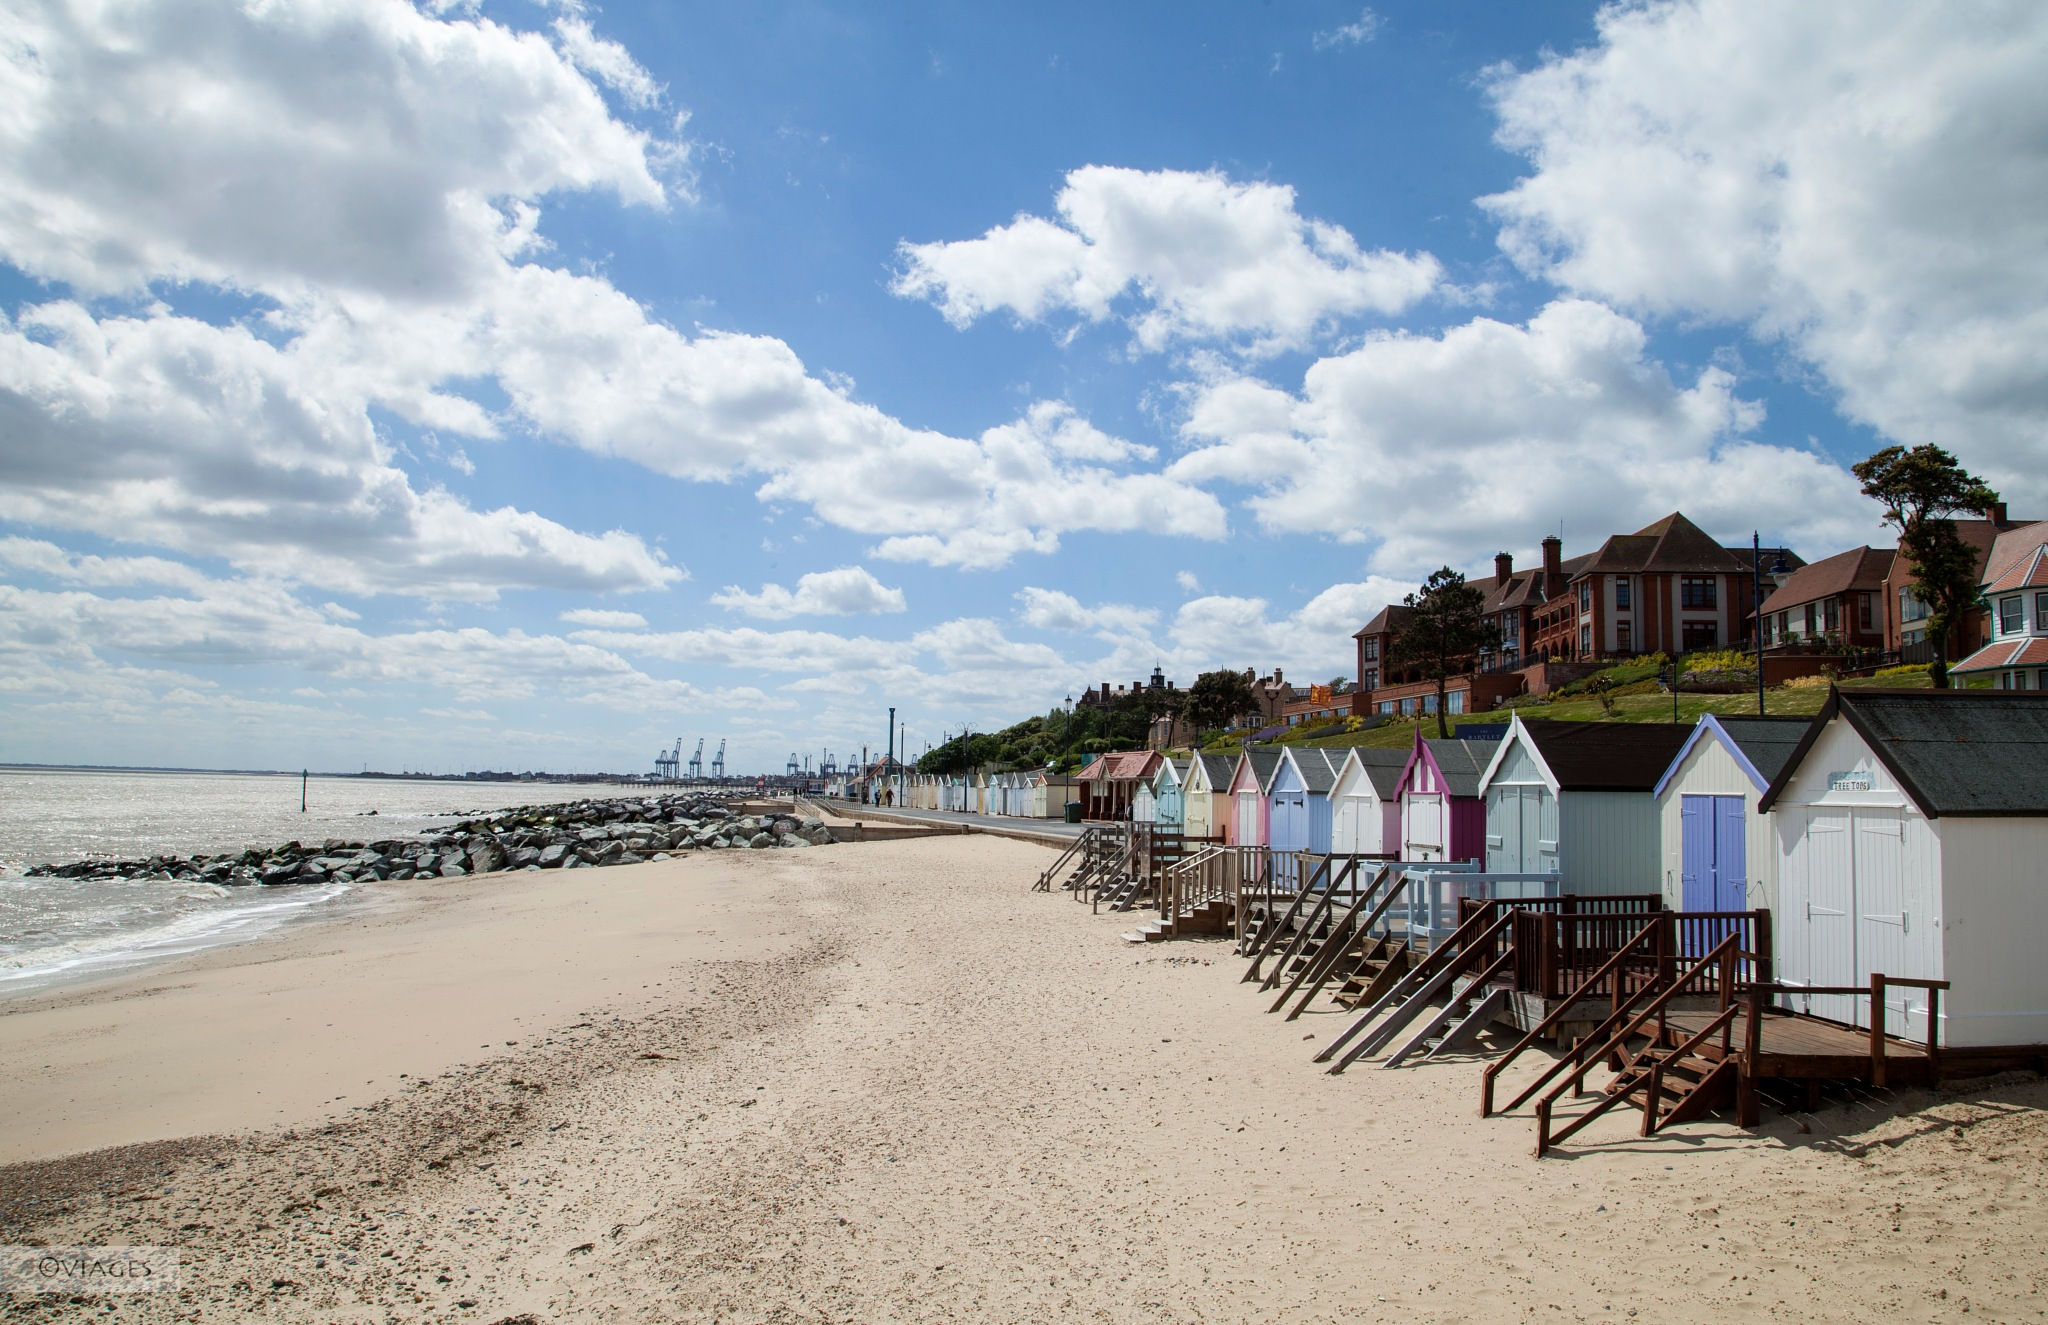 Felixstowe by viages